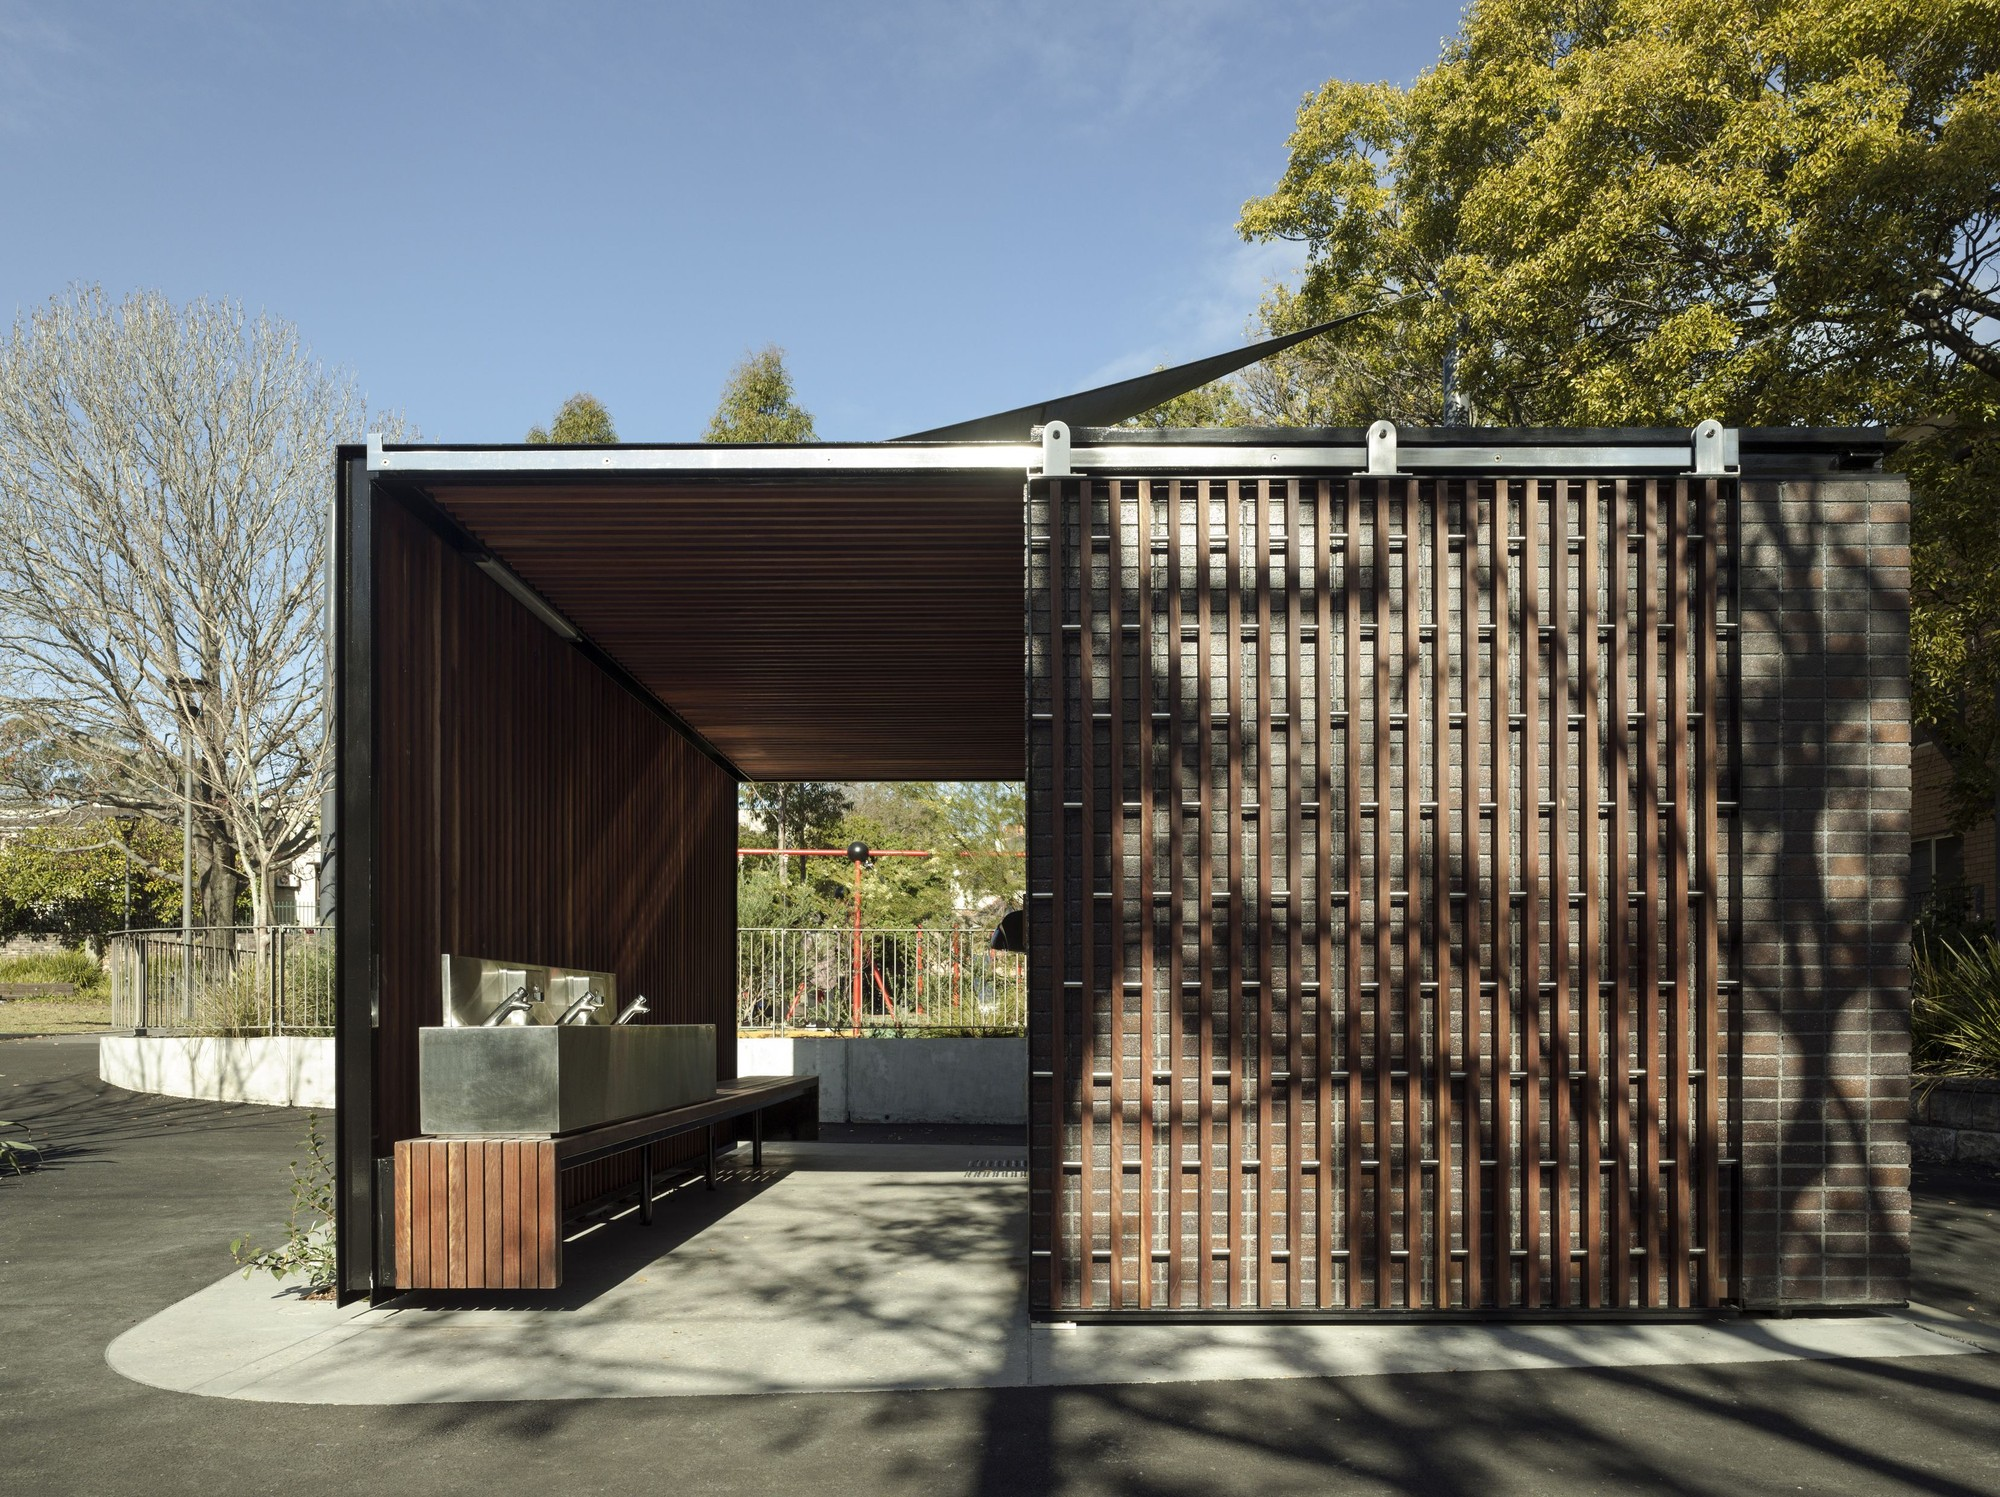 Australian institute of architects announces 2014 nsw awards archdaily Public bathroom design architecture